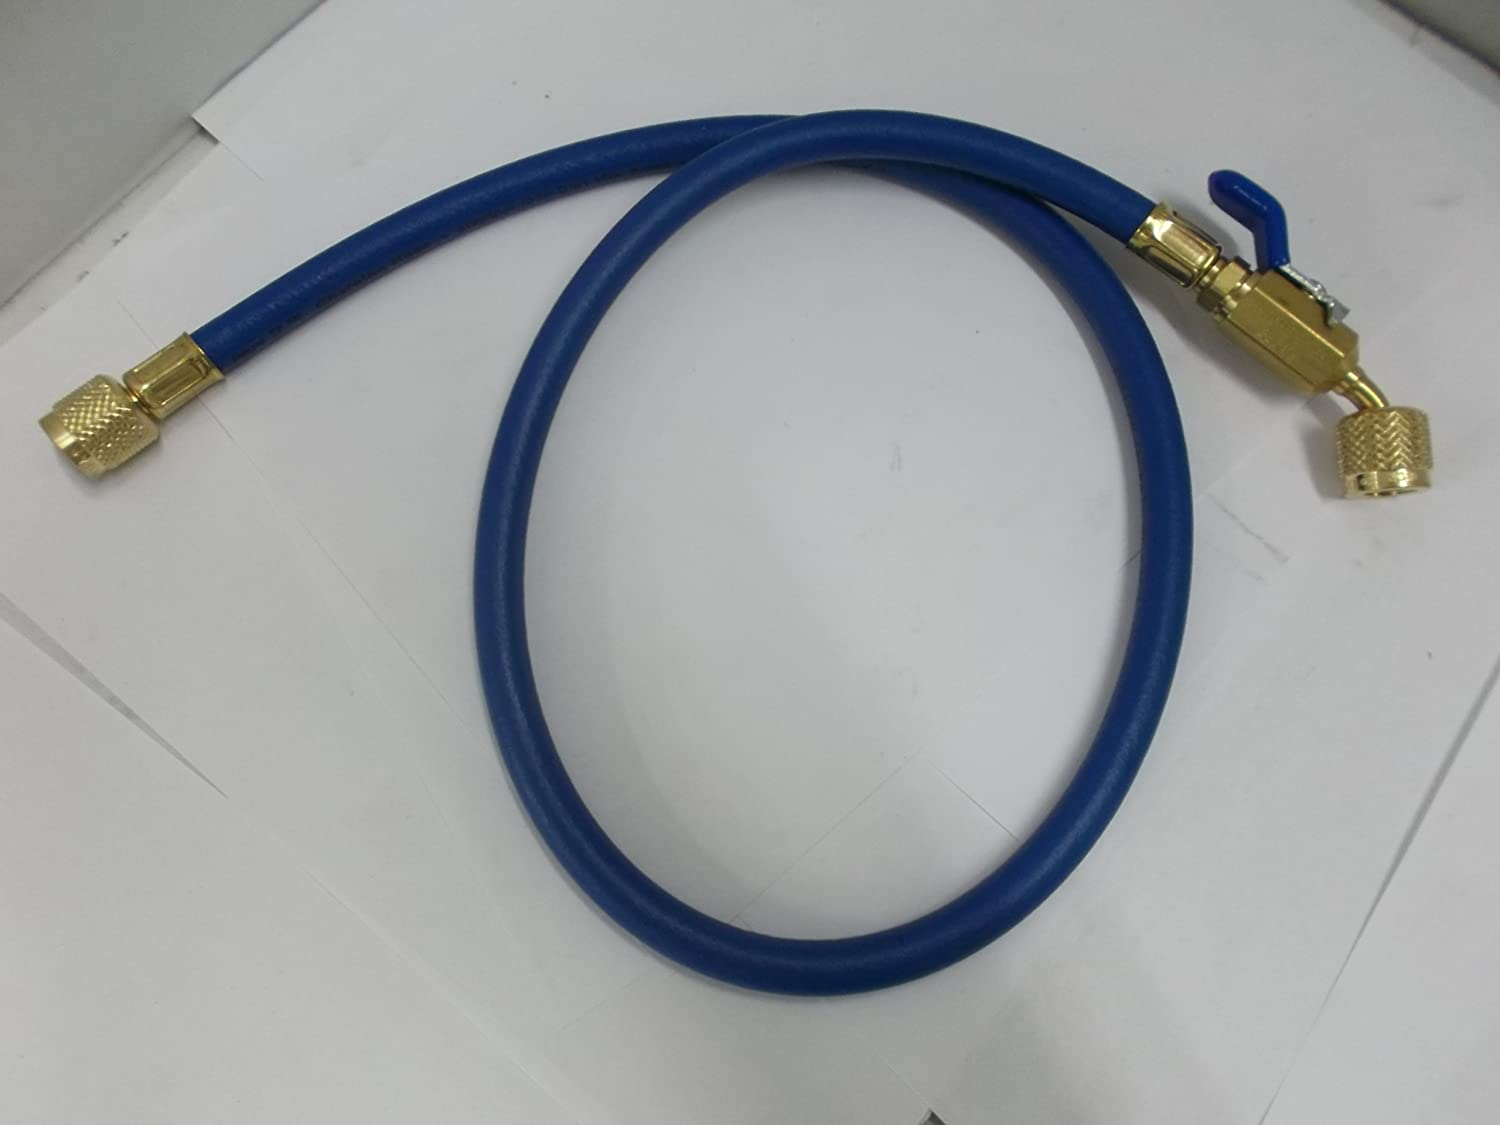 """Yellow Jacket 29248 Plus II 1/4"""" Hose with Compact Ball Valve, 48"""", Blue: Hydraulic Adapters: Industrial & Scientific"""